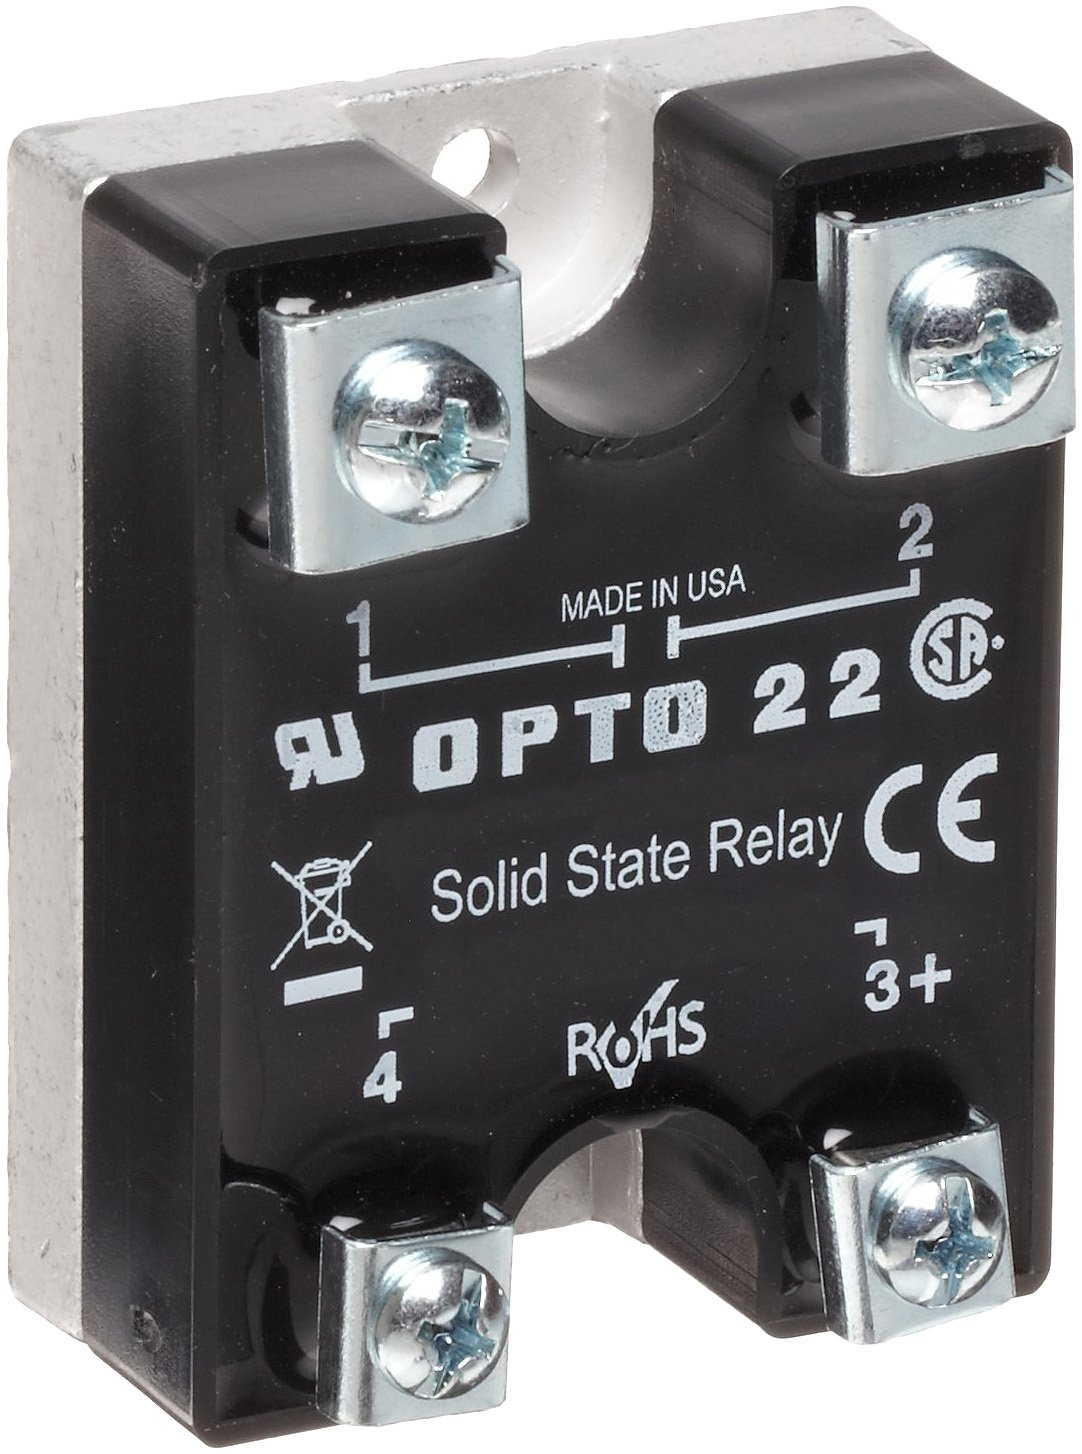 Opto D DC Control Solid State Relay VAC Amp V - Solid state relay gets hot